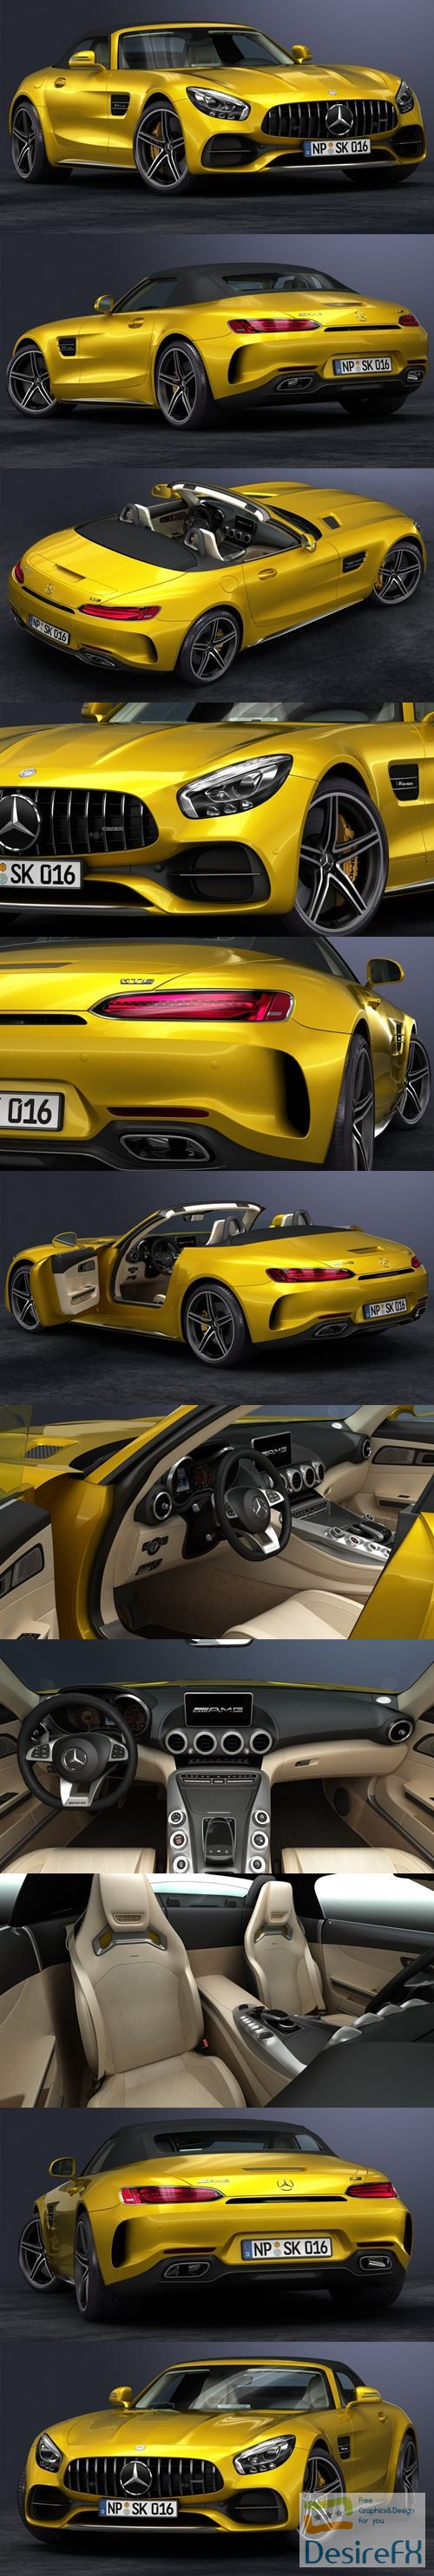 3d-models - Mercedes-Benz AMG GT-C Roadster 2017 3D Model